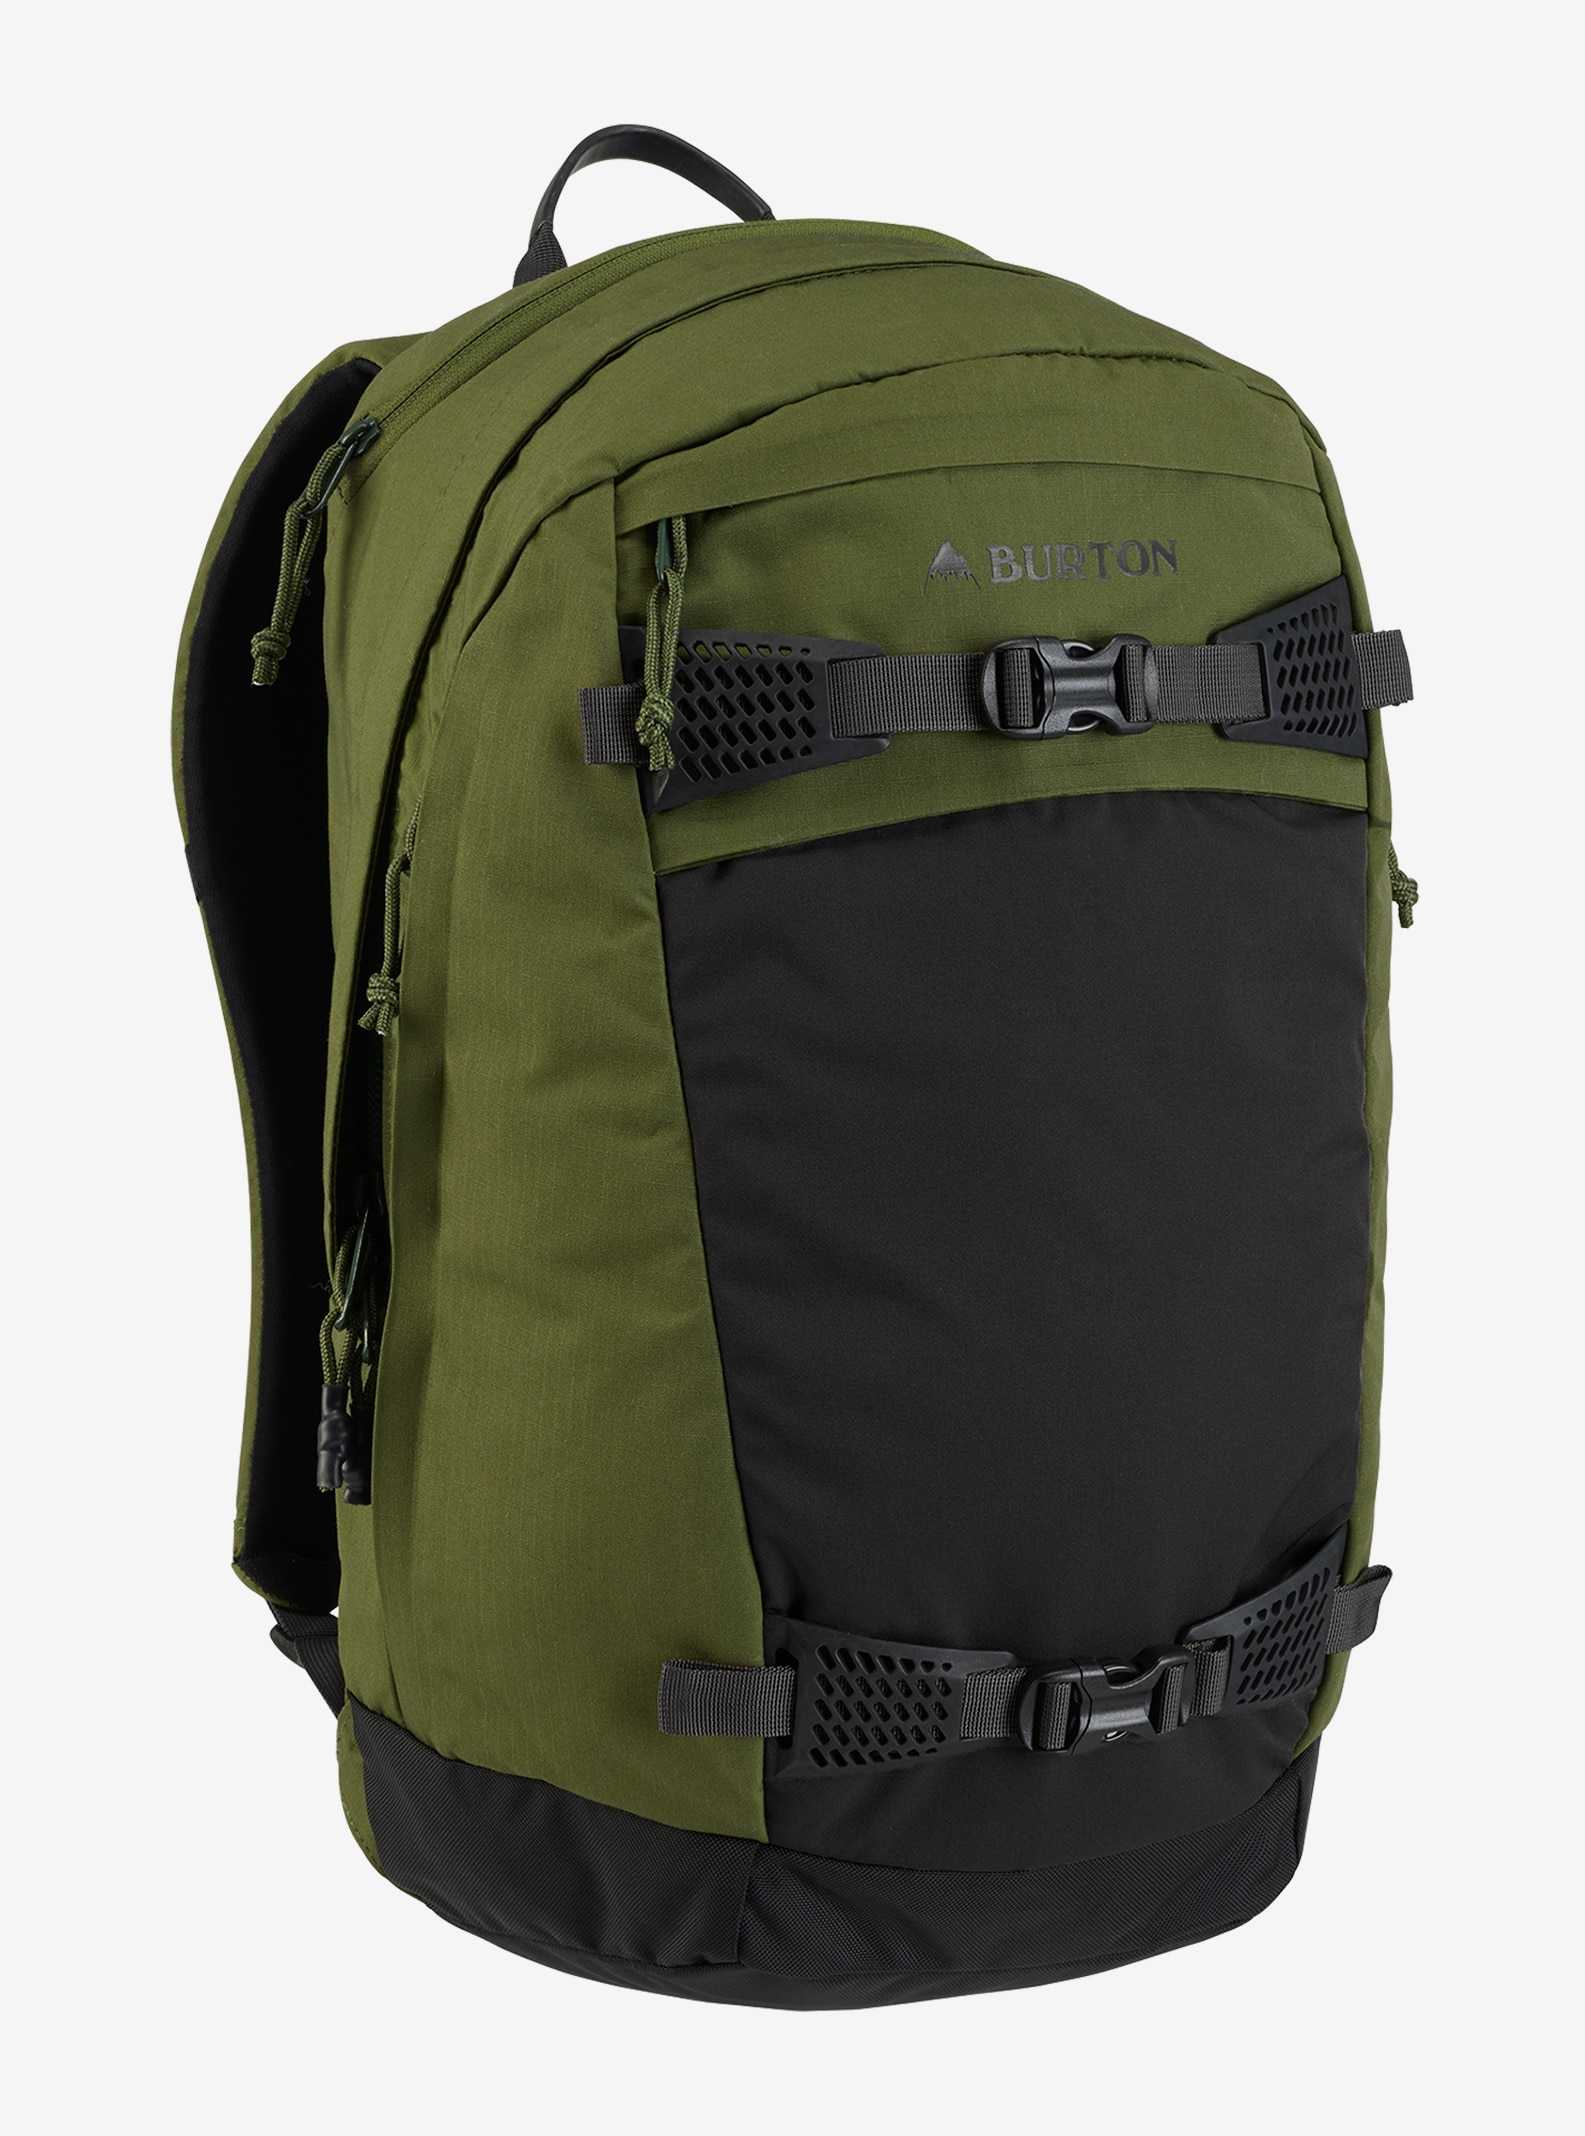 Burton Day Hiker Pro 28L Backpack shown in Rifle Green Ripstop